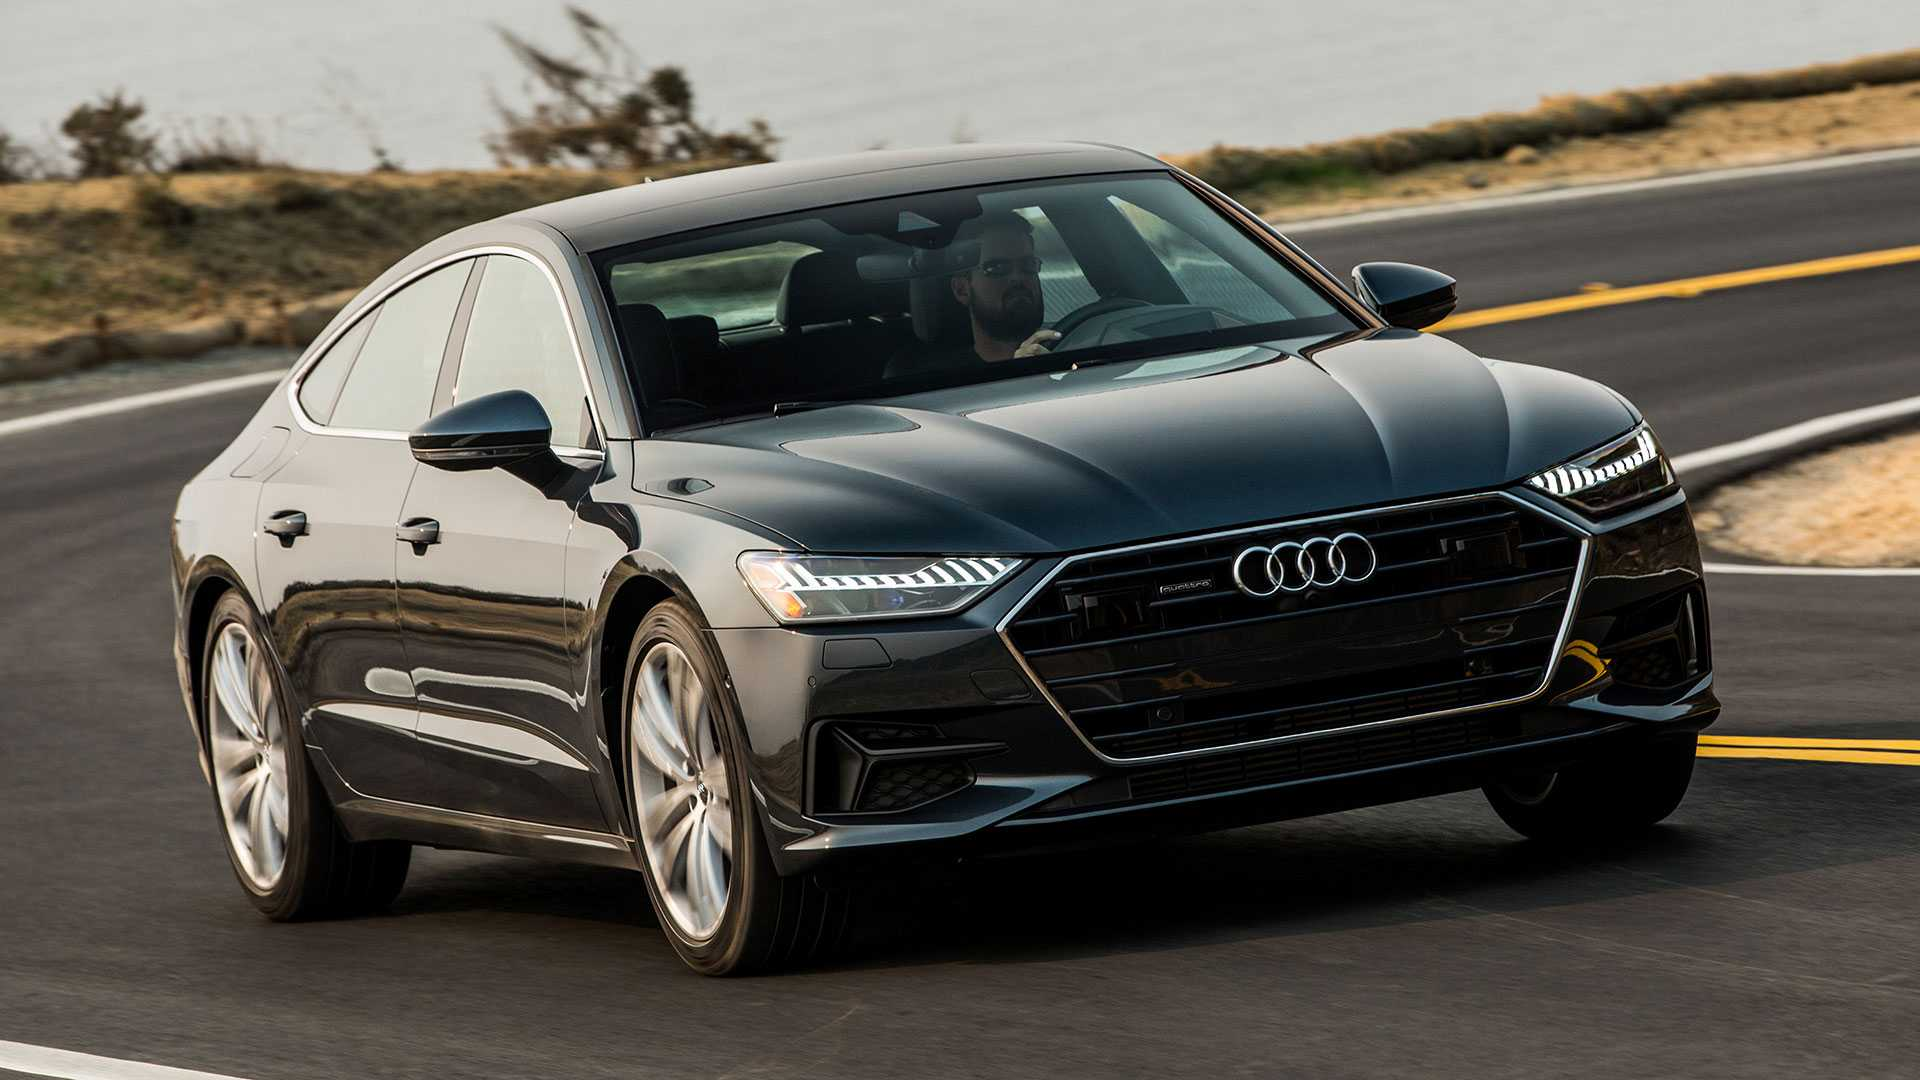 36 Concept of 2019 Audi A7 Performance by 2019 Audi A7